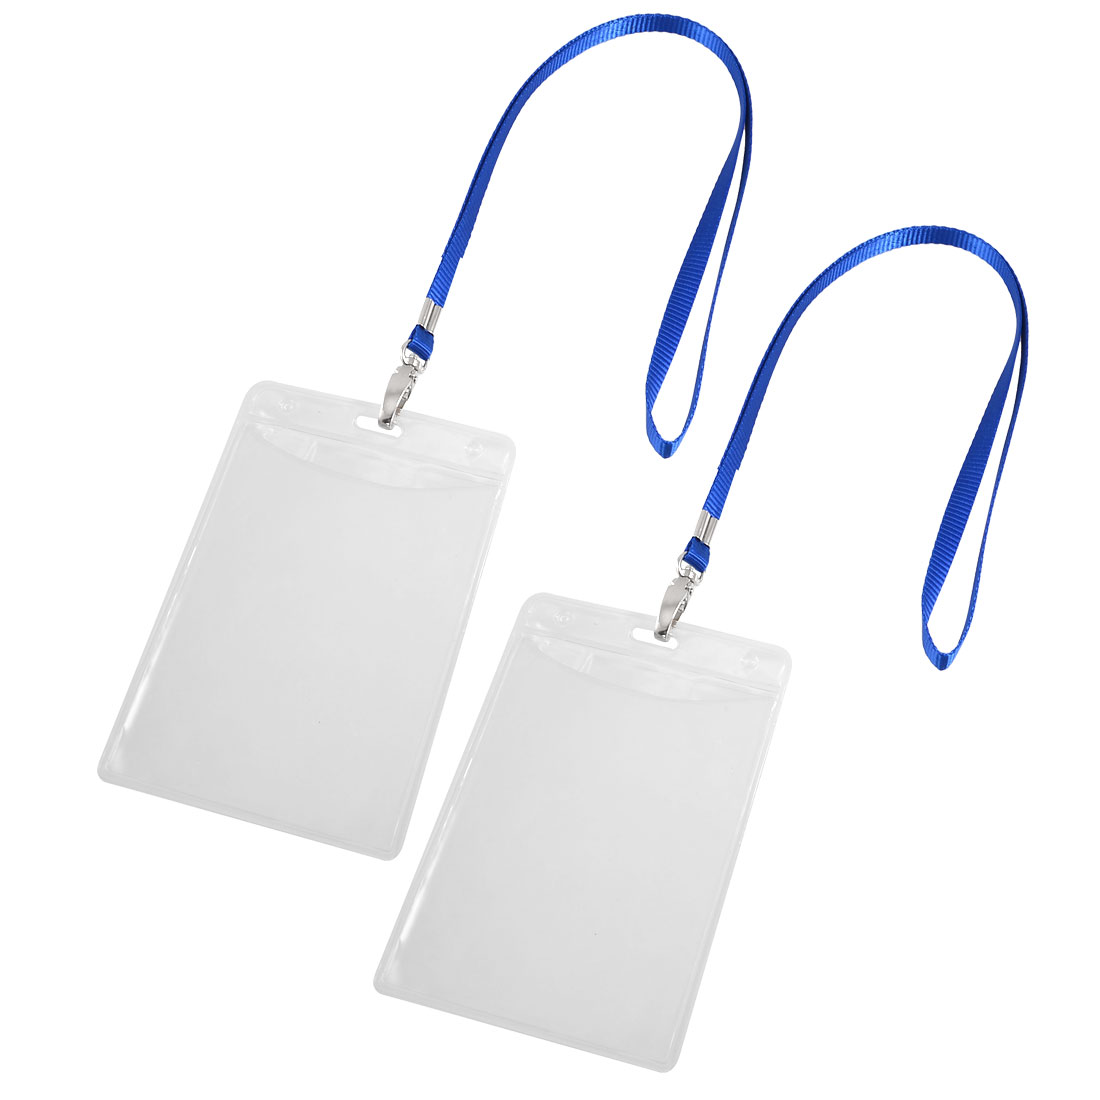 Plastic Vertical ID Badge Card Holder Clear 2 Pcs w Detachable Neck Lanyard